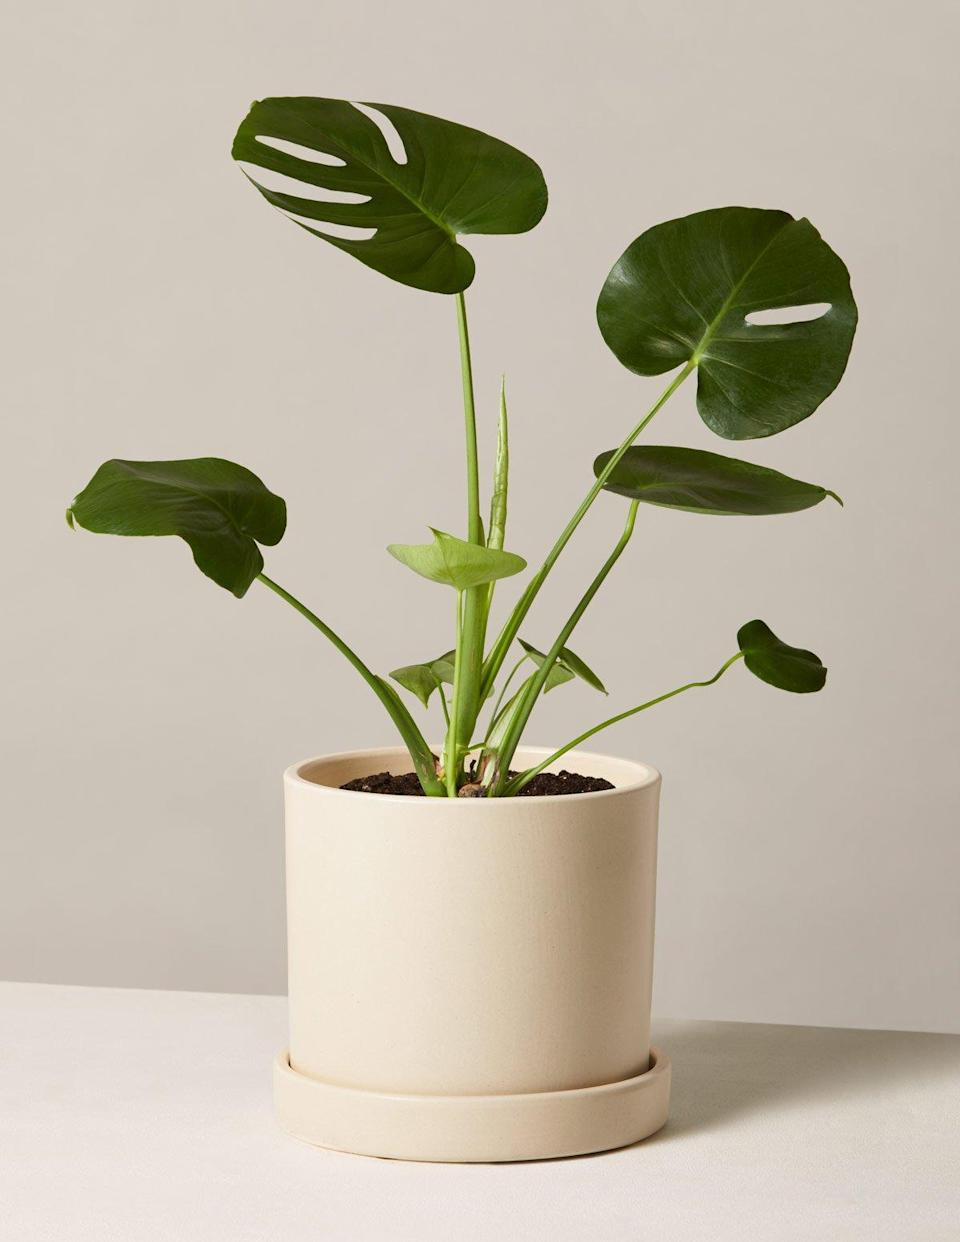 <p>In these WFH times, a plant is a perfect gift for adding much-needed zen vibes to any living/office space.</p>